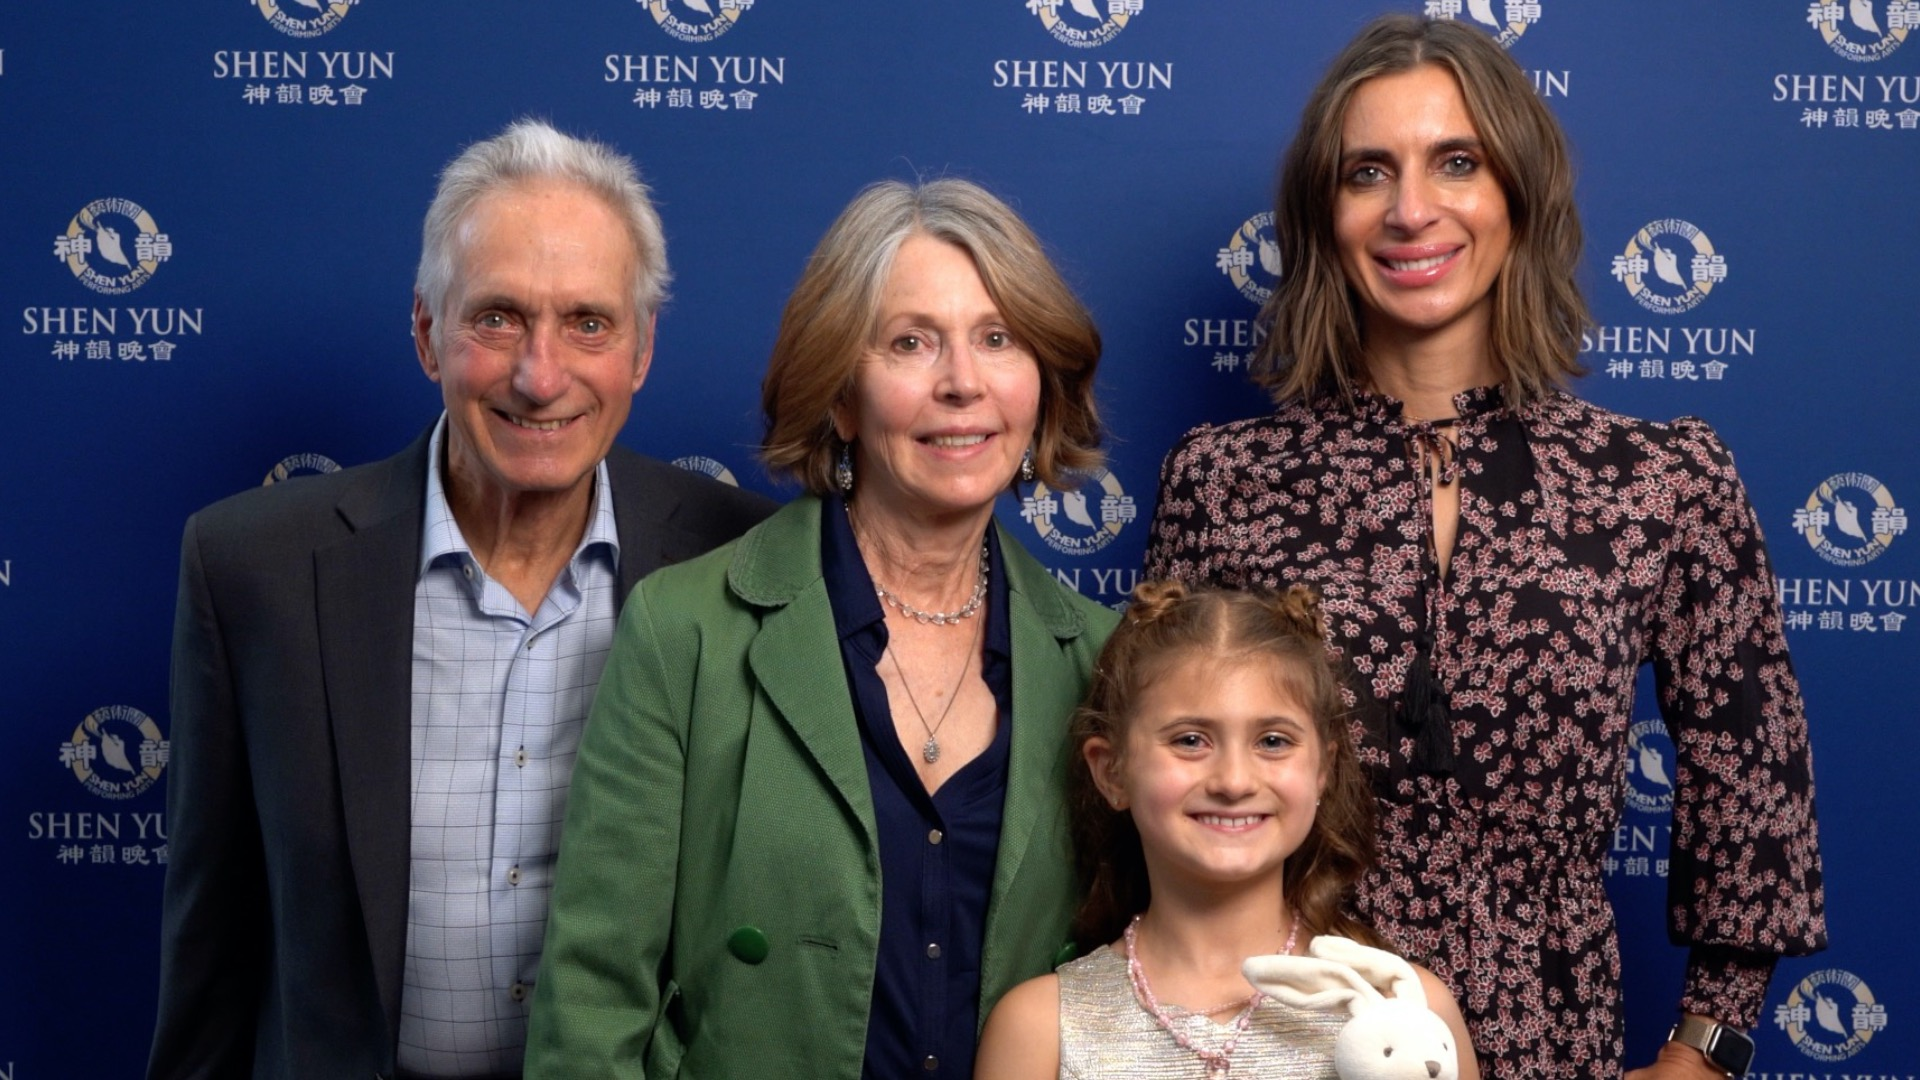 Family Inspired by Shen Yun: 'We Need This Beauty and We Need Culture'